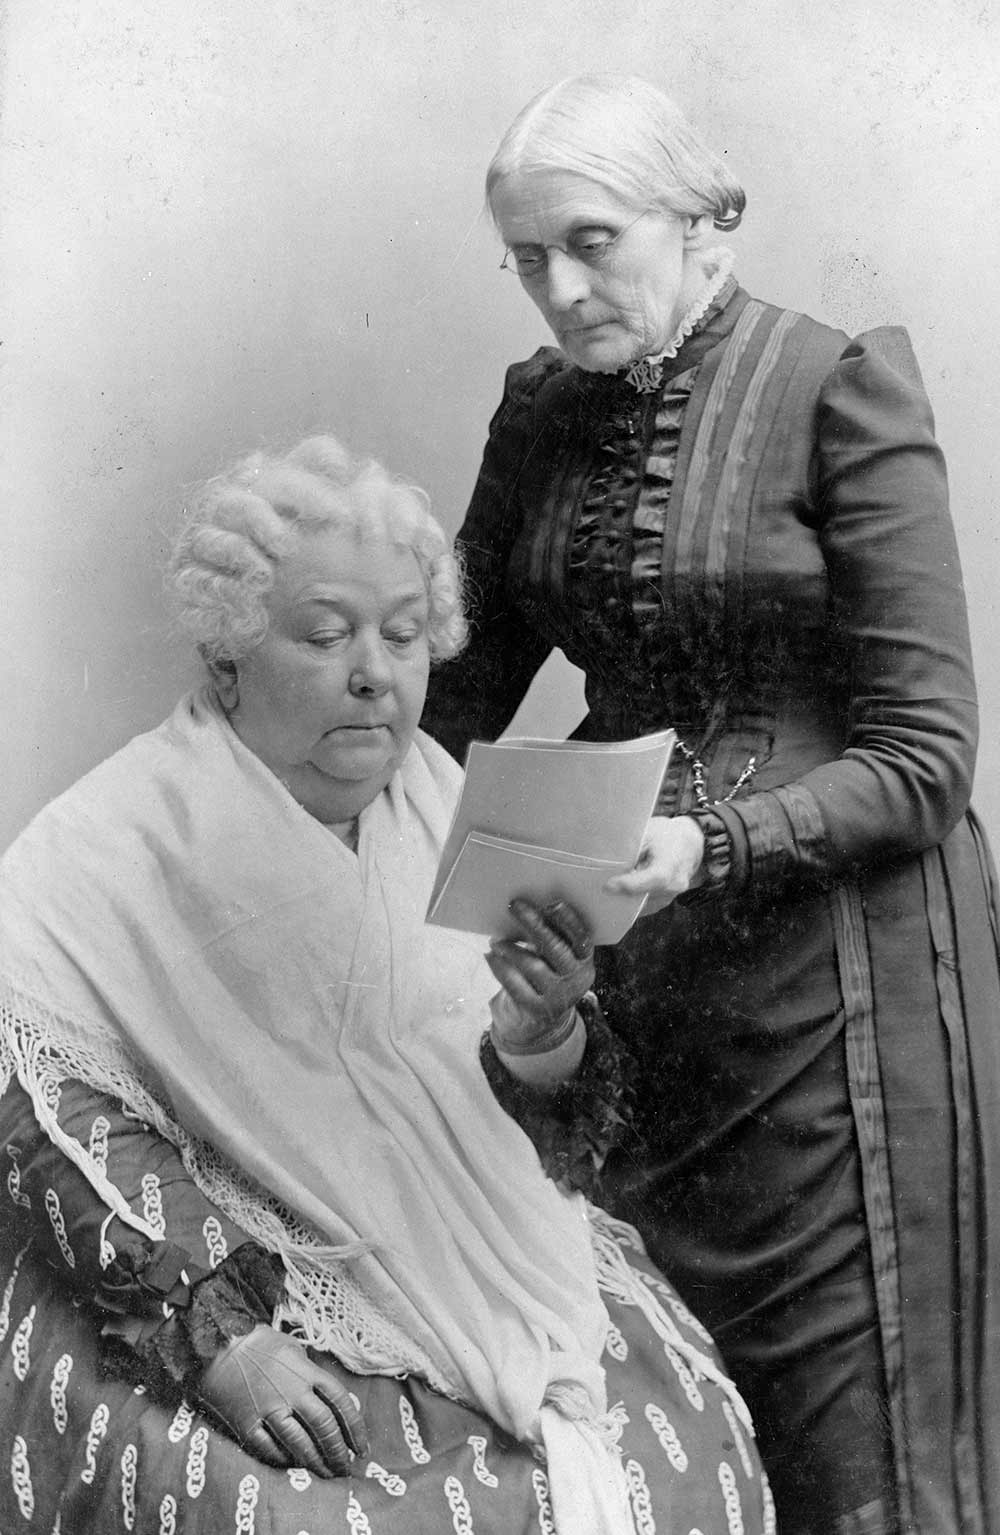 Elizabeth Cady Stanton (left) and Susan B. Anthony, between 1880 and 1902 (Library of Congress)